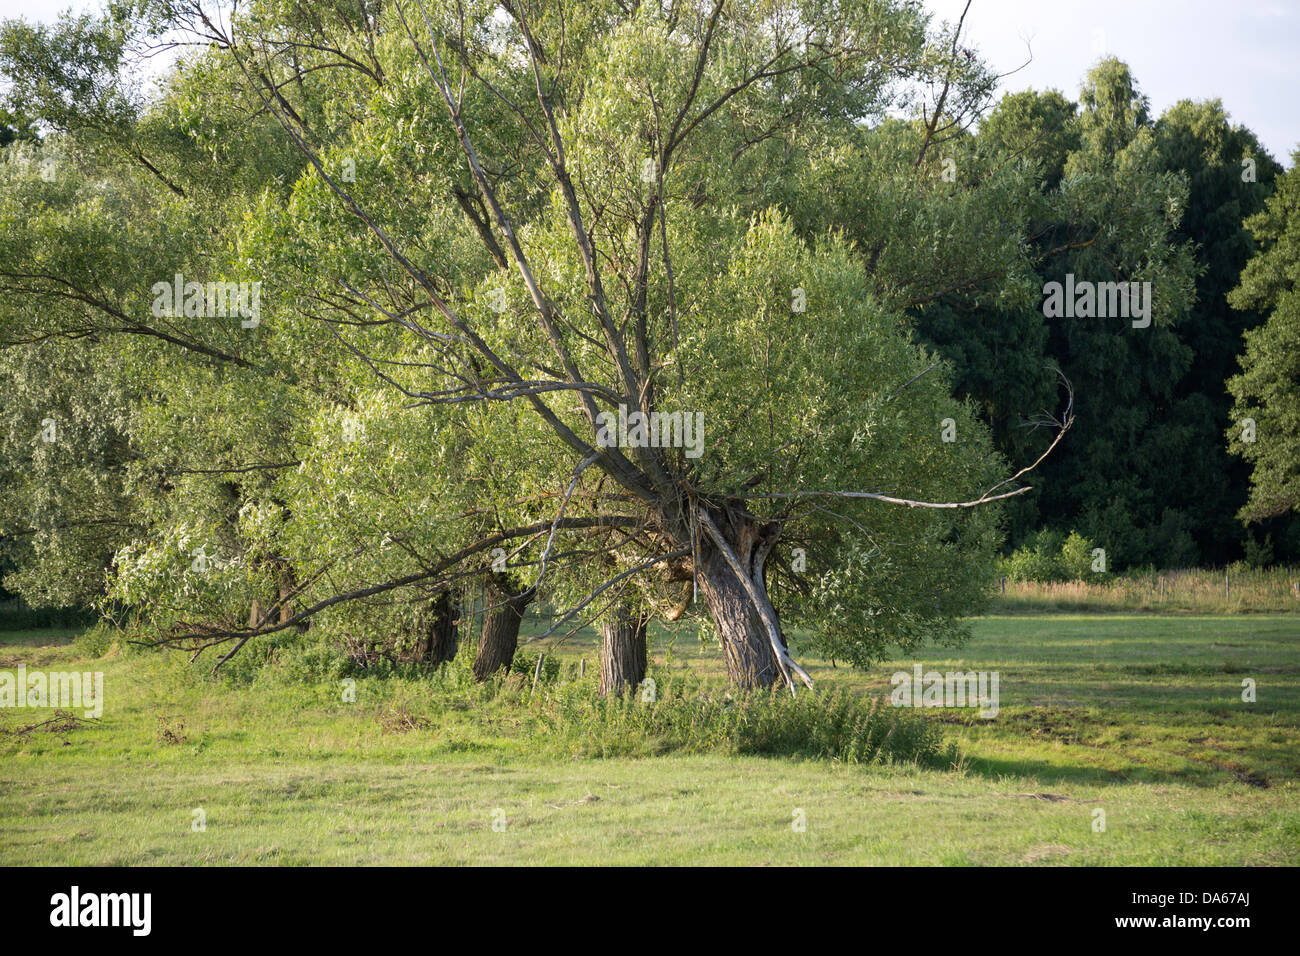 Willow trees in Poland, Masovia, Europe, Mazowsze, polish, masovian landscape Stock Photo